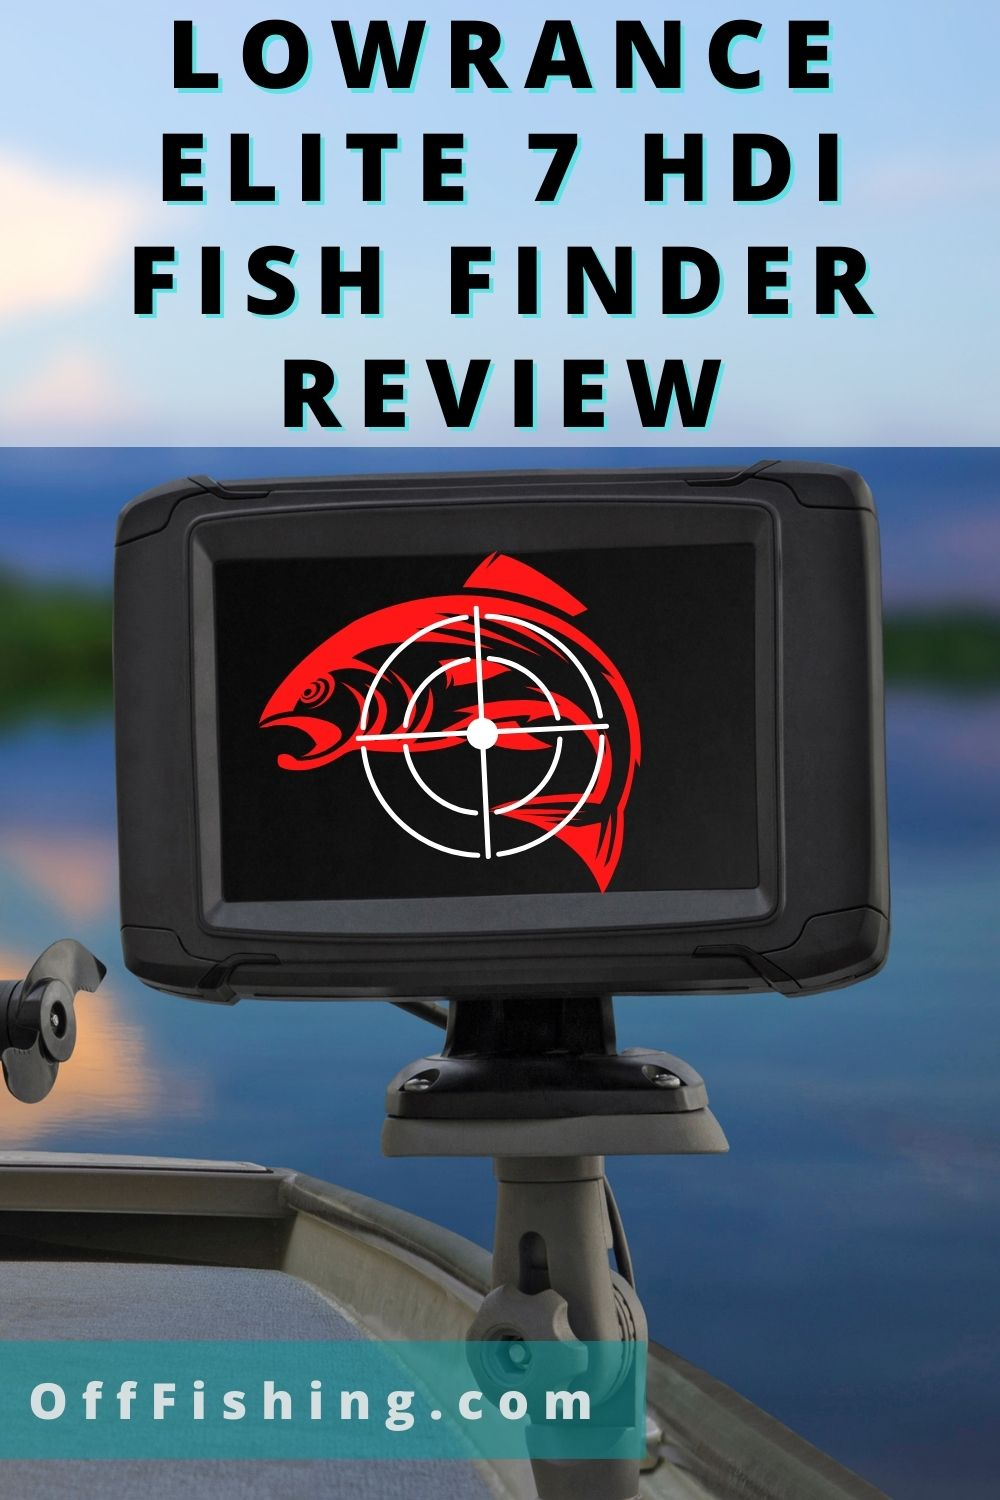 HDI Fish Finder Lowrance Elite 7 Review Pinterest pIN